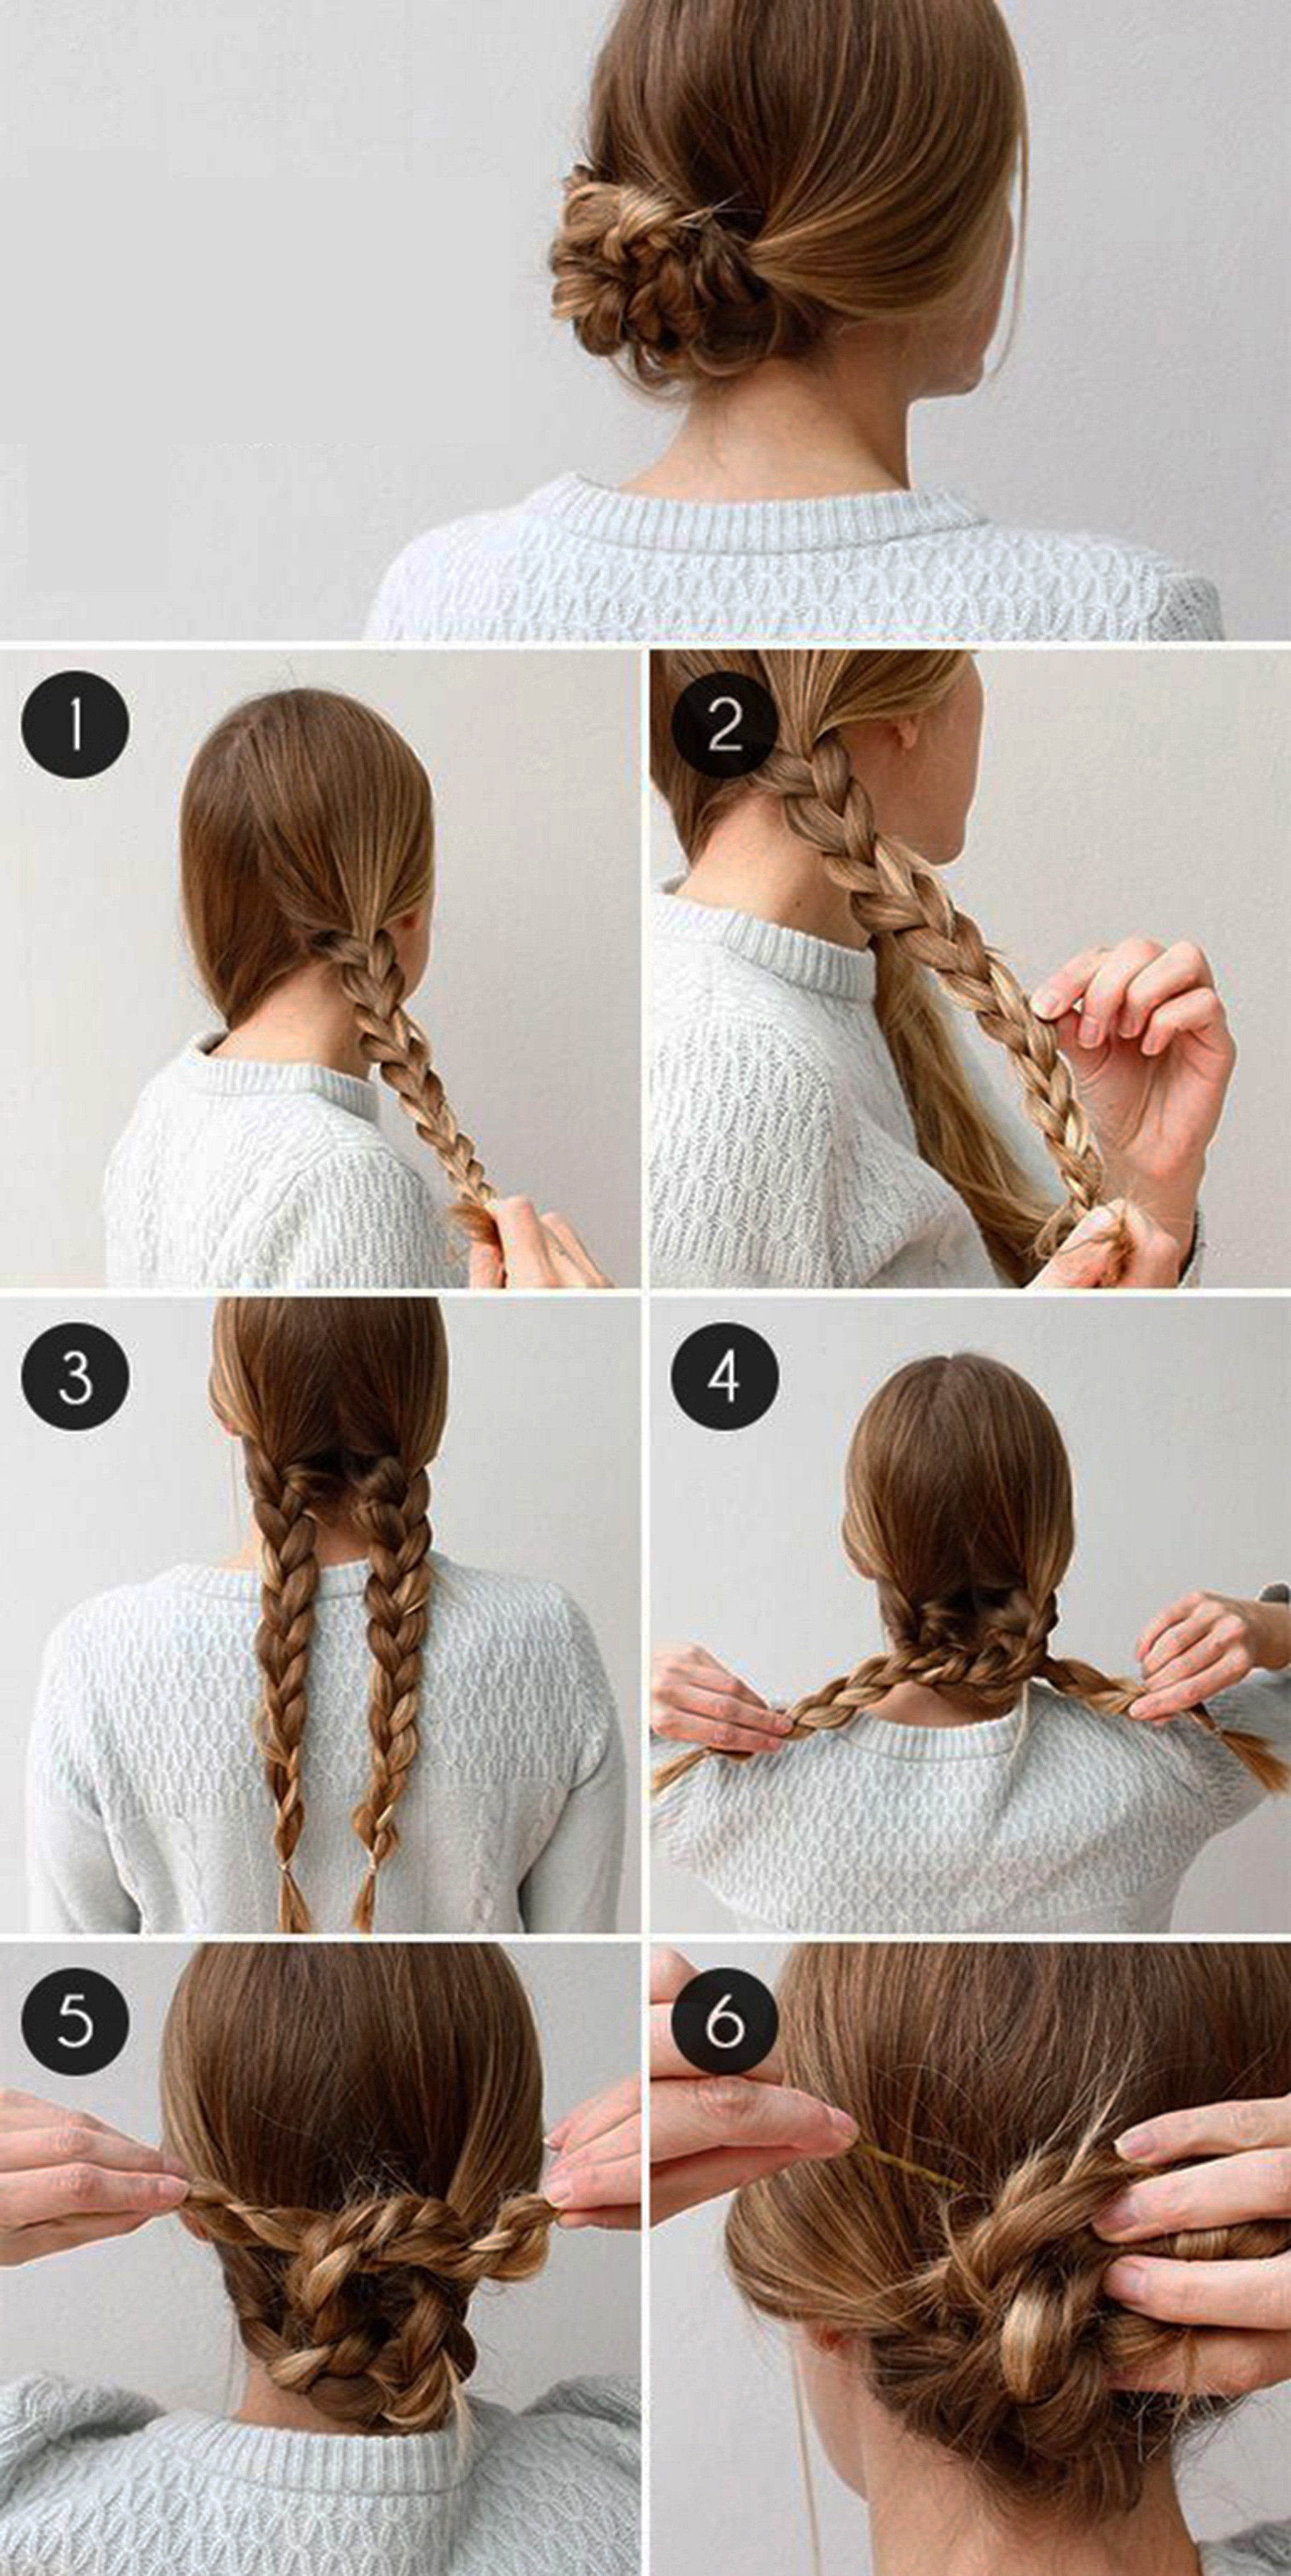 The Best Easy Step By Step Tutorials On How To Do Braided Hairstyle Pictures